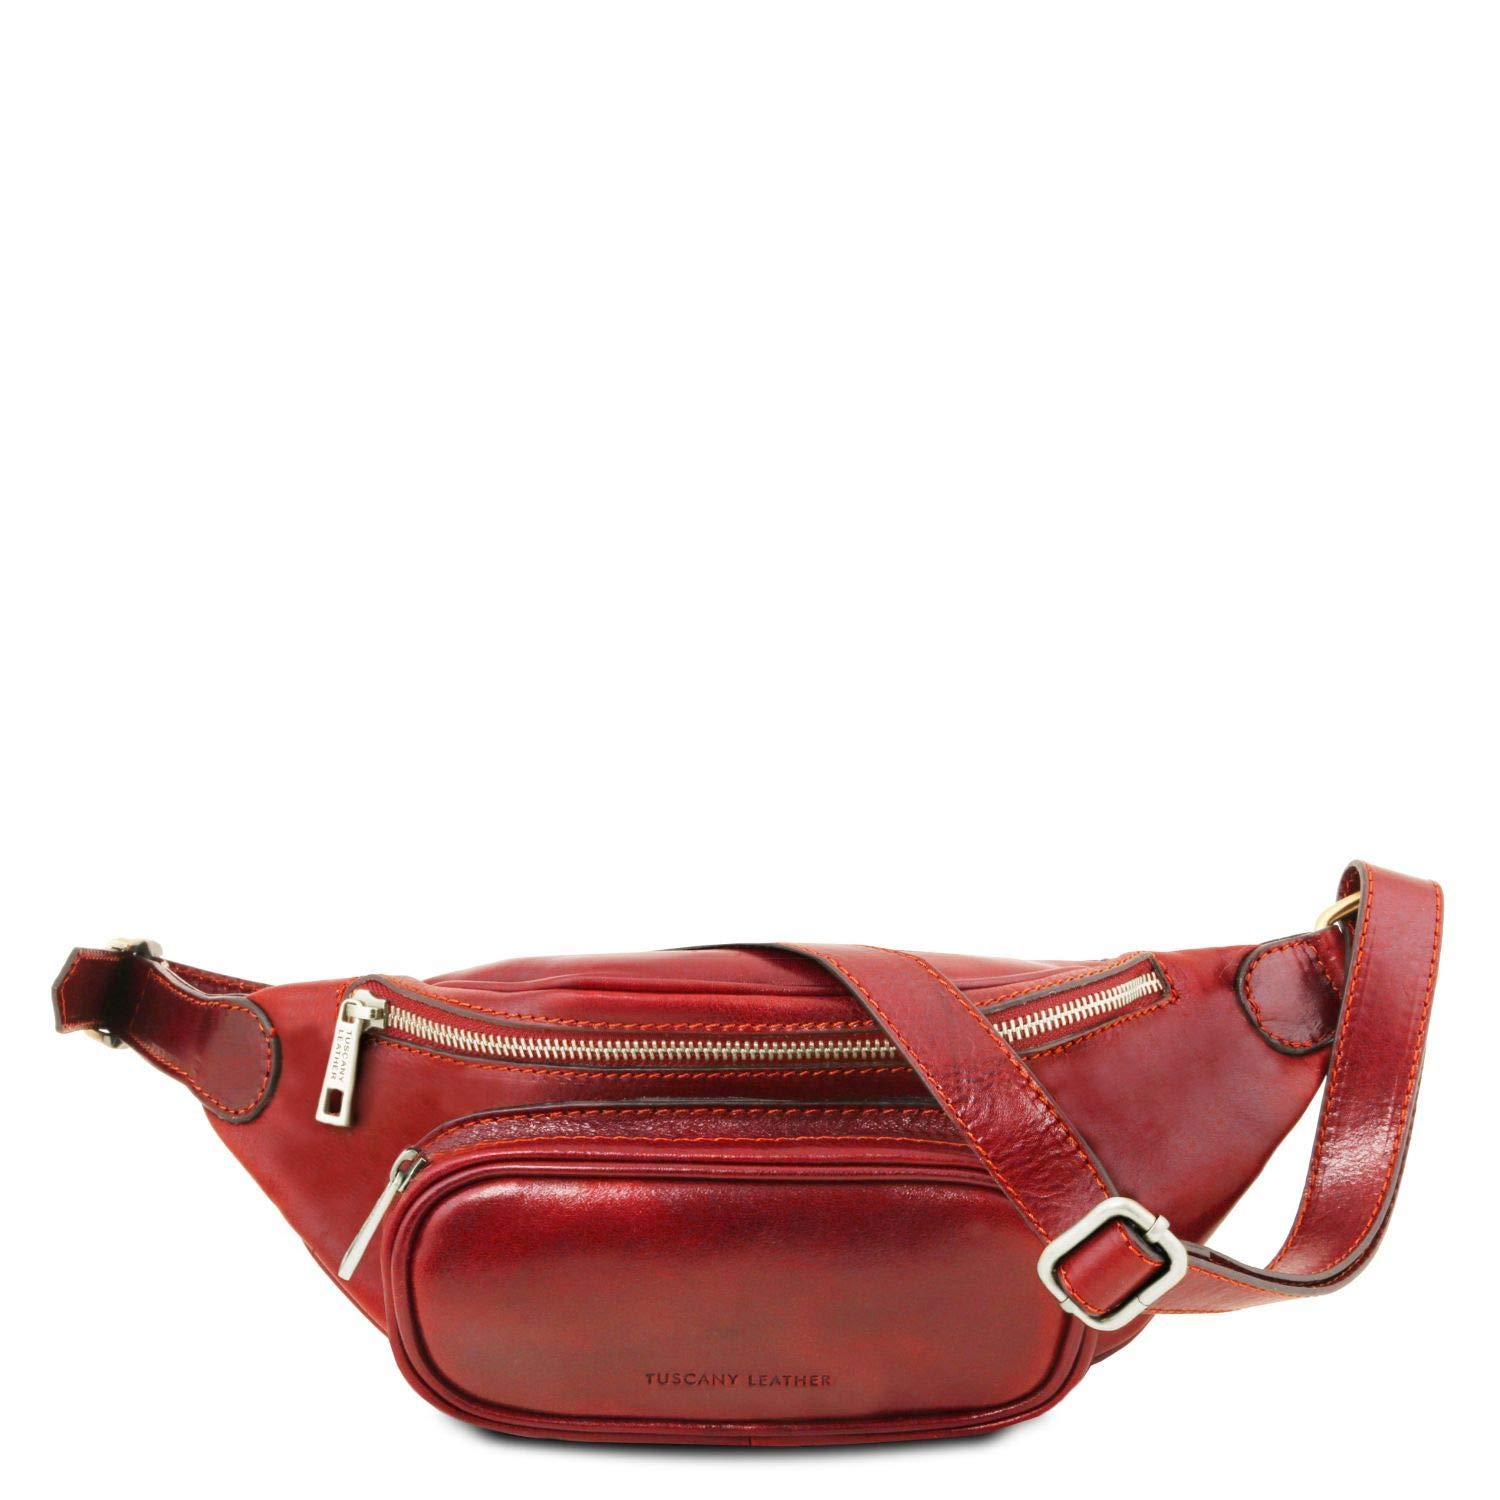 Tuscany Leather Leather fanny pack Red